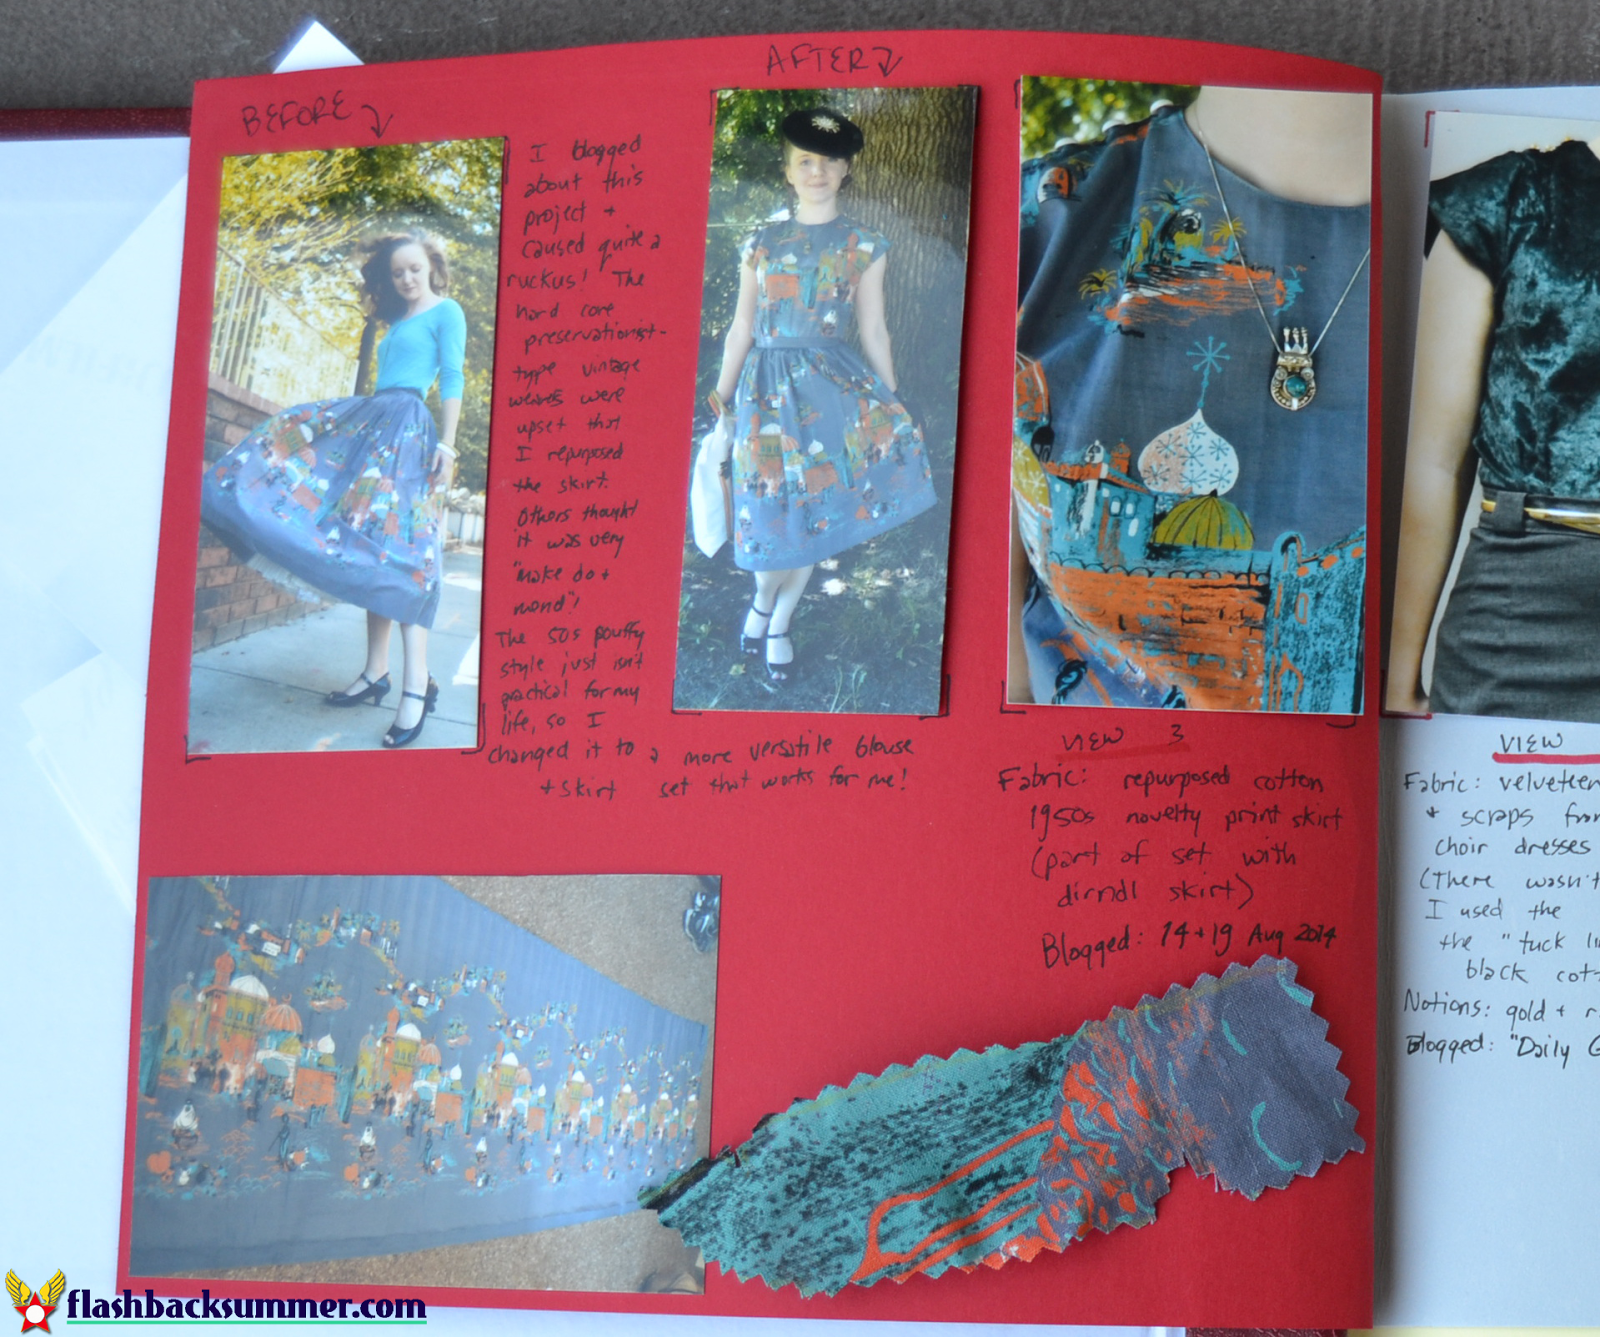 Flashback Summer: Creating a Project Journal - Sewing DIY